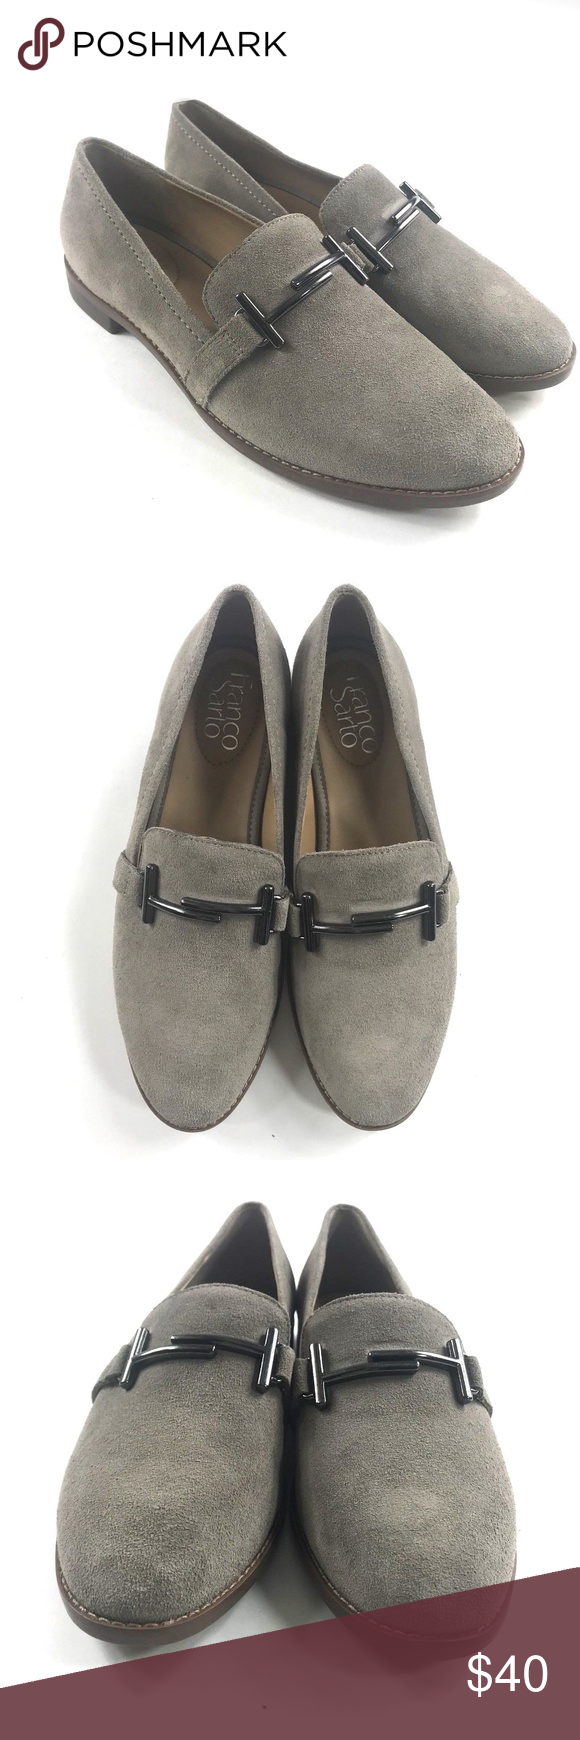 "49a2f878144 NEW Franco Sarto Slip On Loafers Harlow Suede taupe Slip on Size 6.5 M Low  stacked heel Approx 1"" or less heel New without box Franco Sarto Shoes"